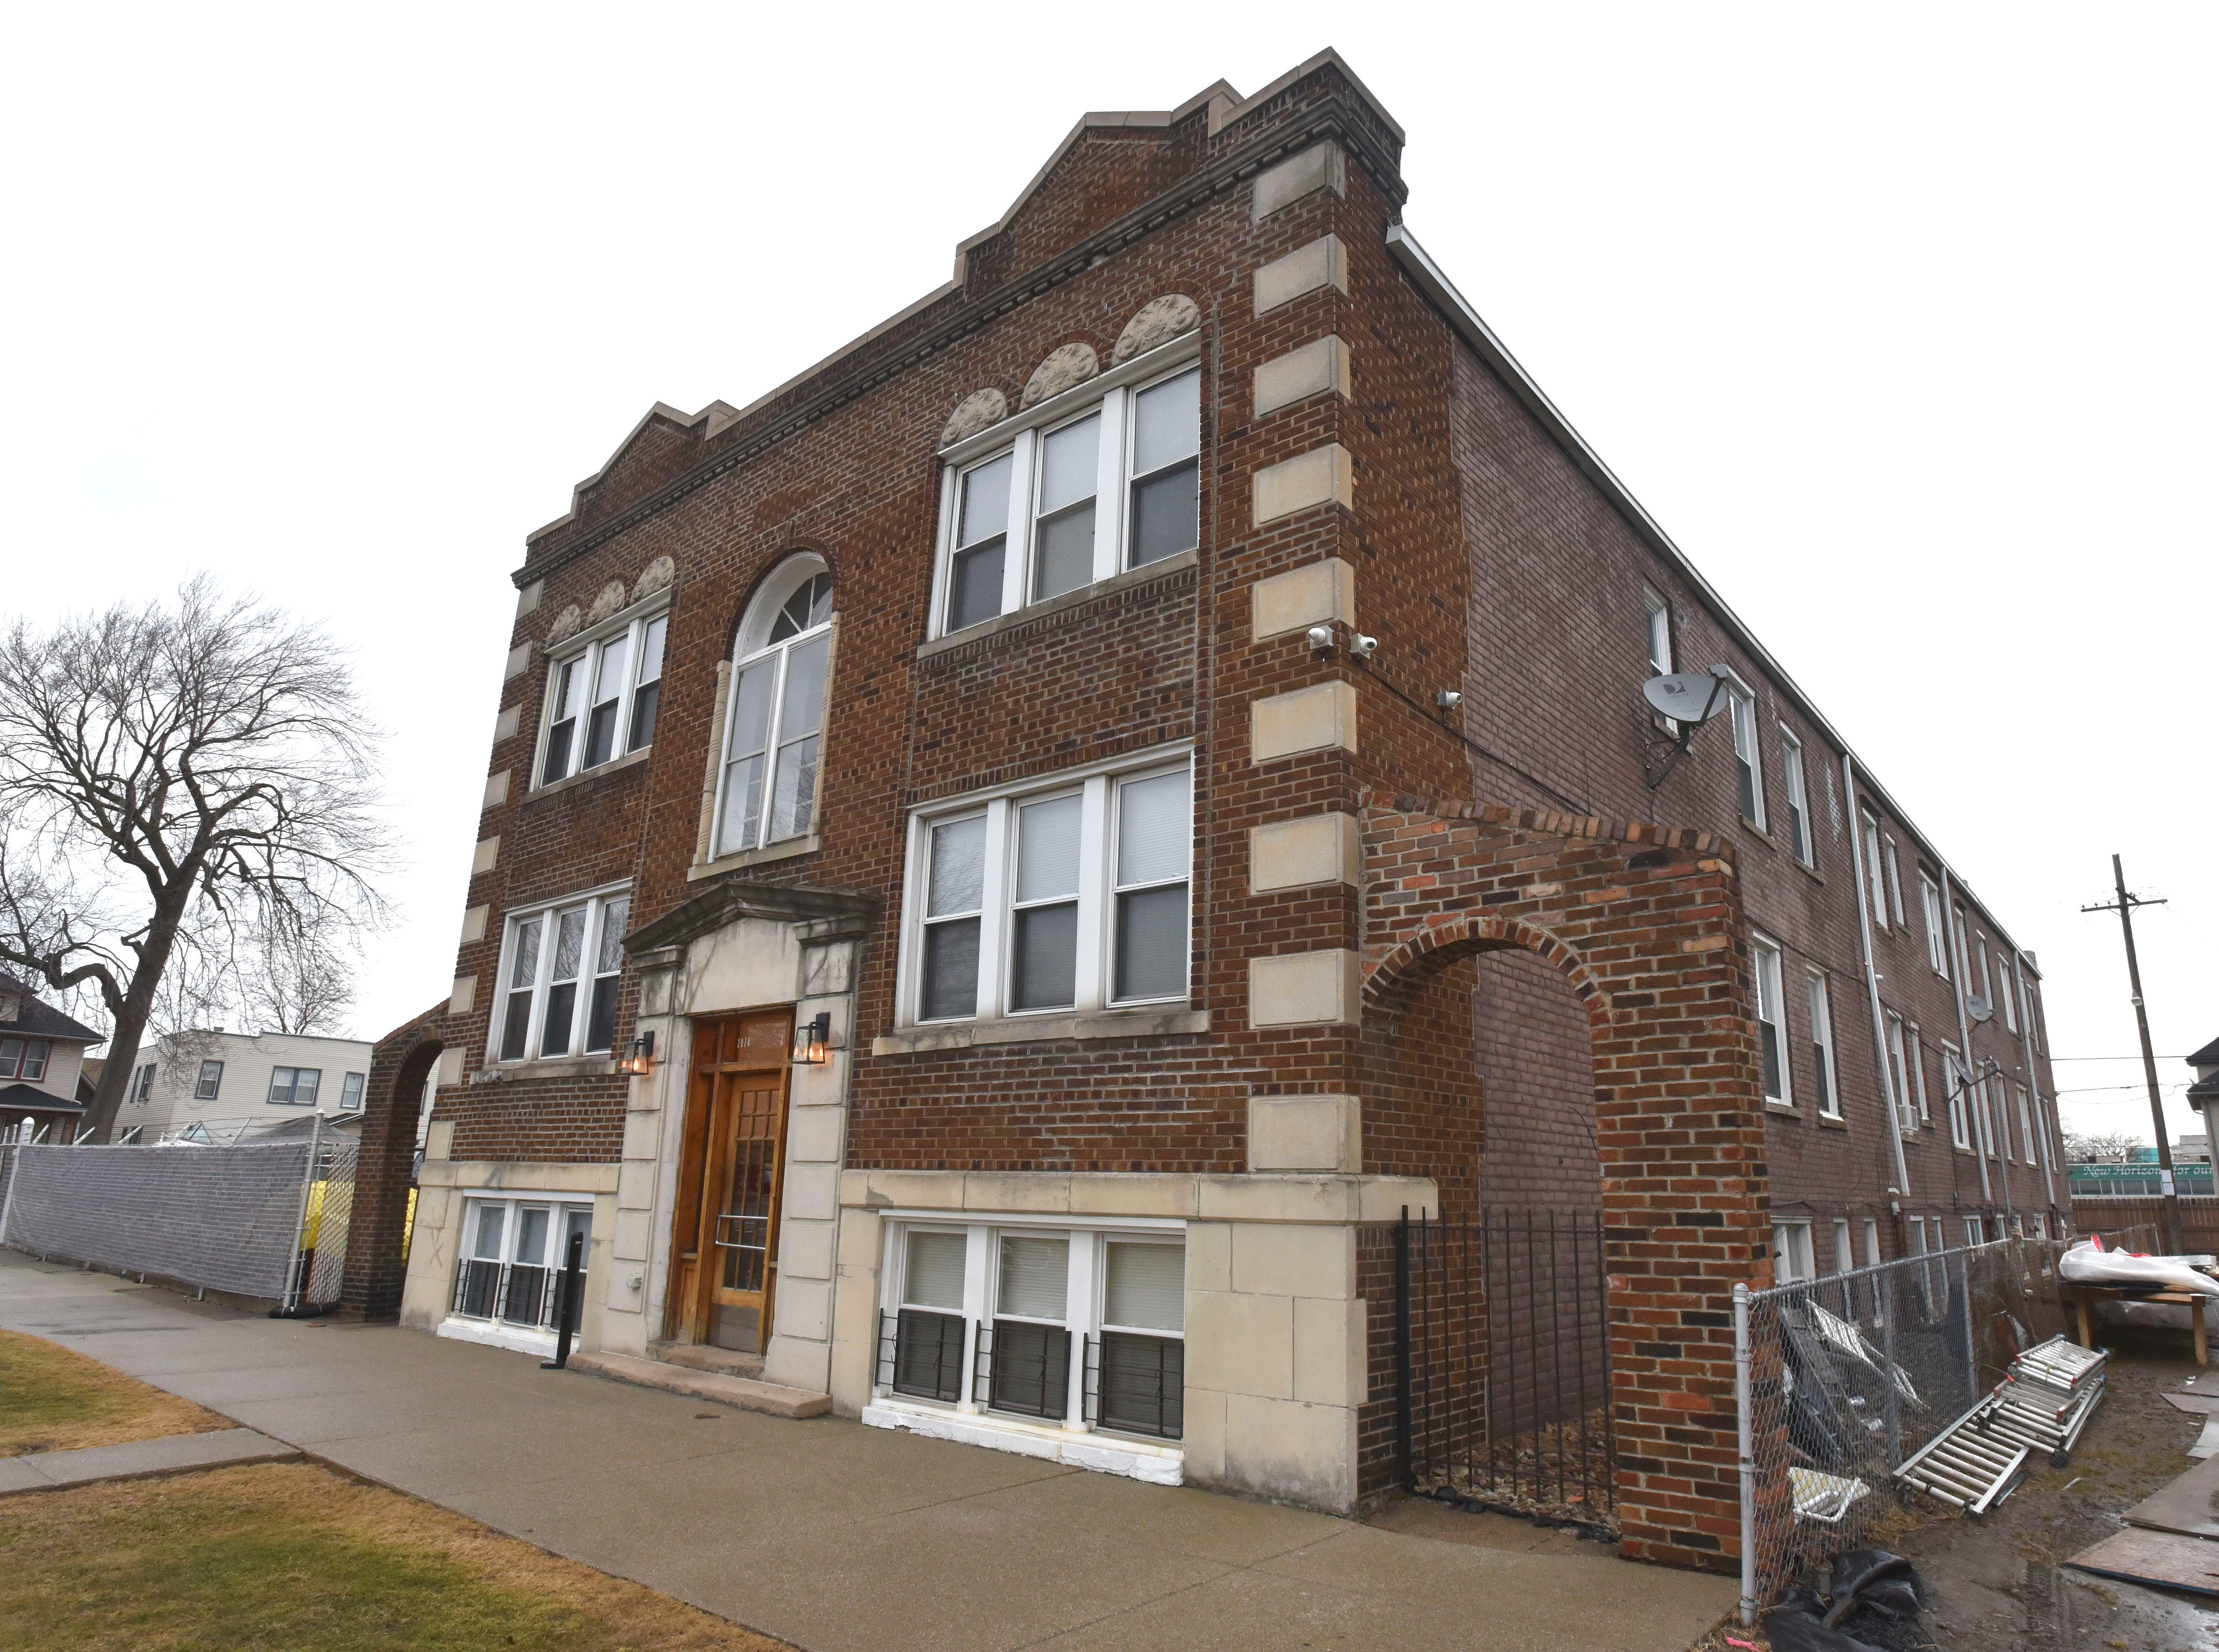 This three-story brownstone apartment building at 2072-2074 Wabash in Corktown sold for $1.9 million.